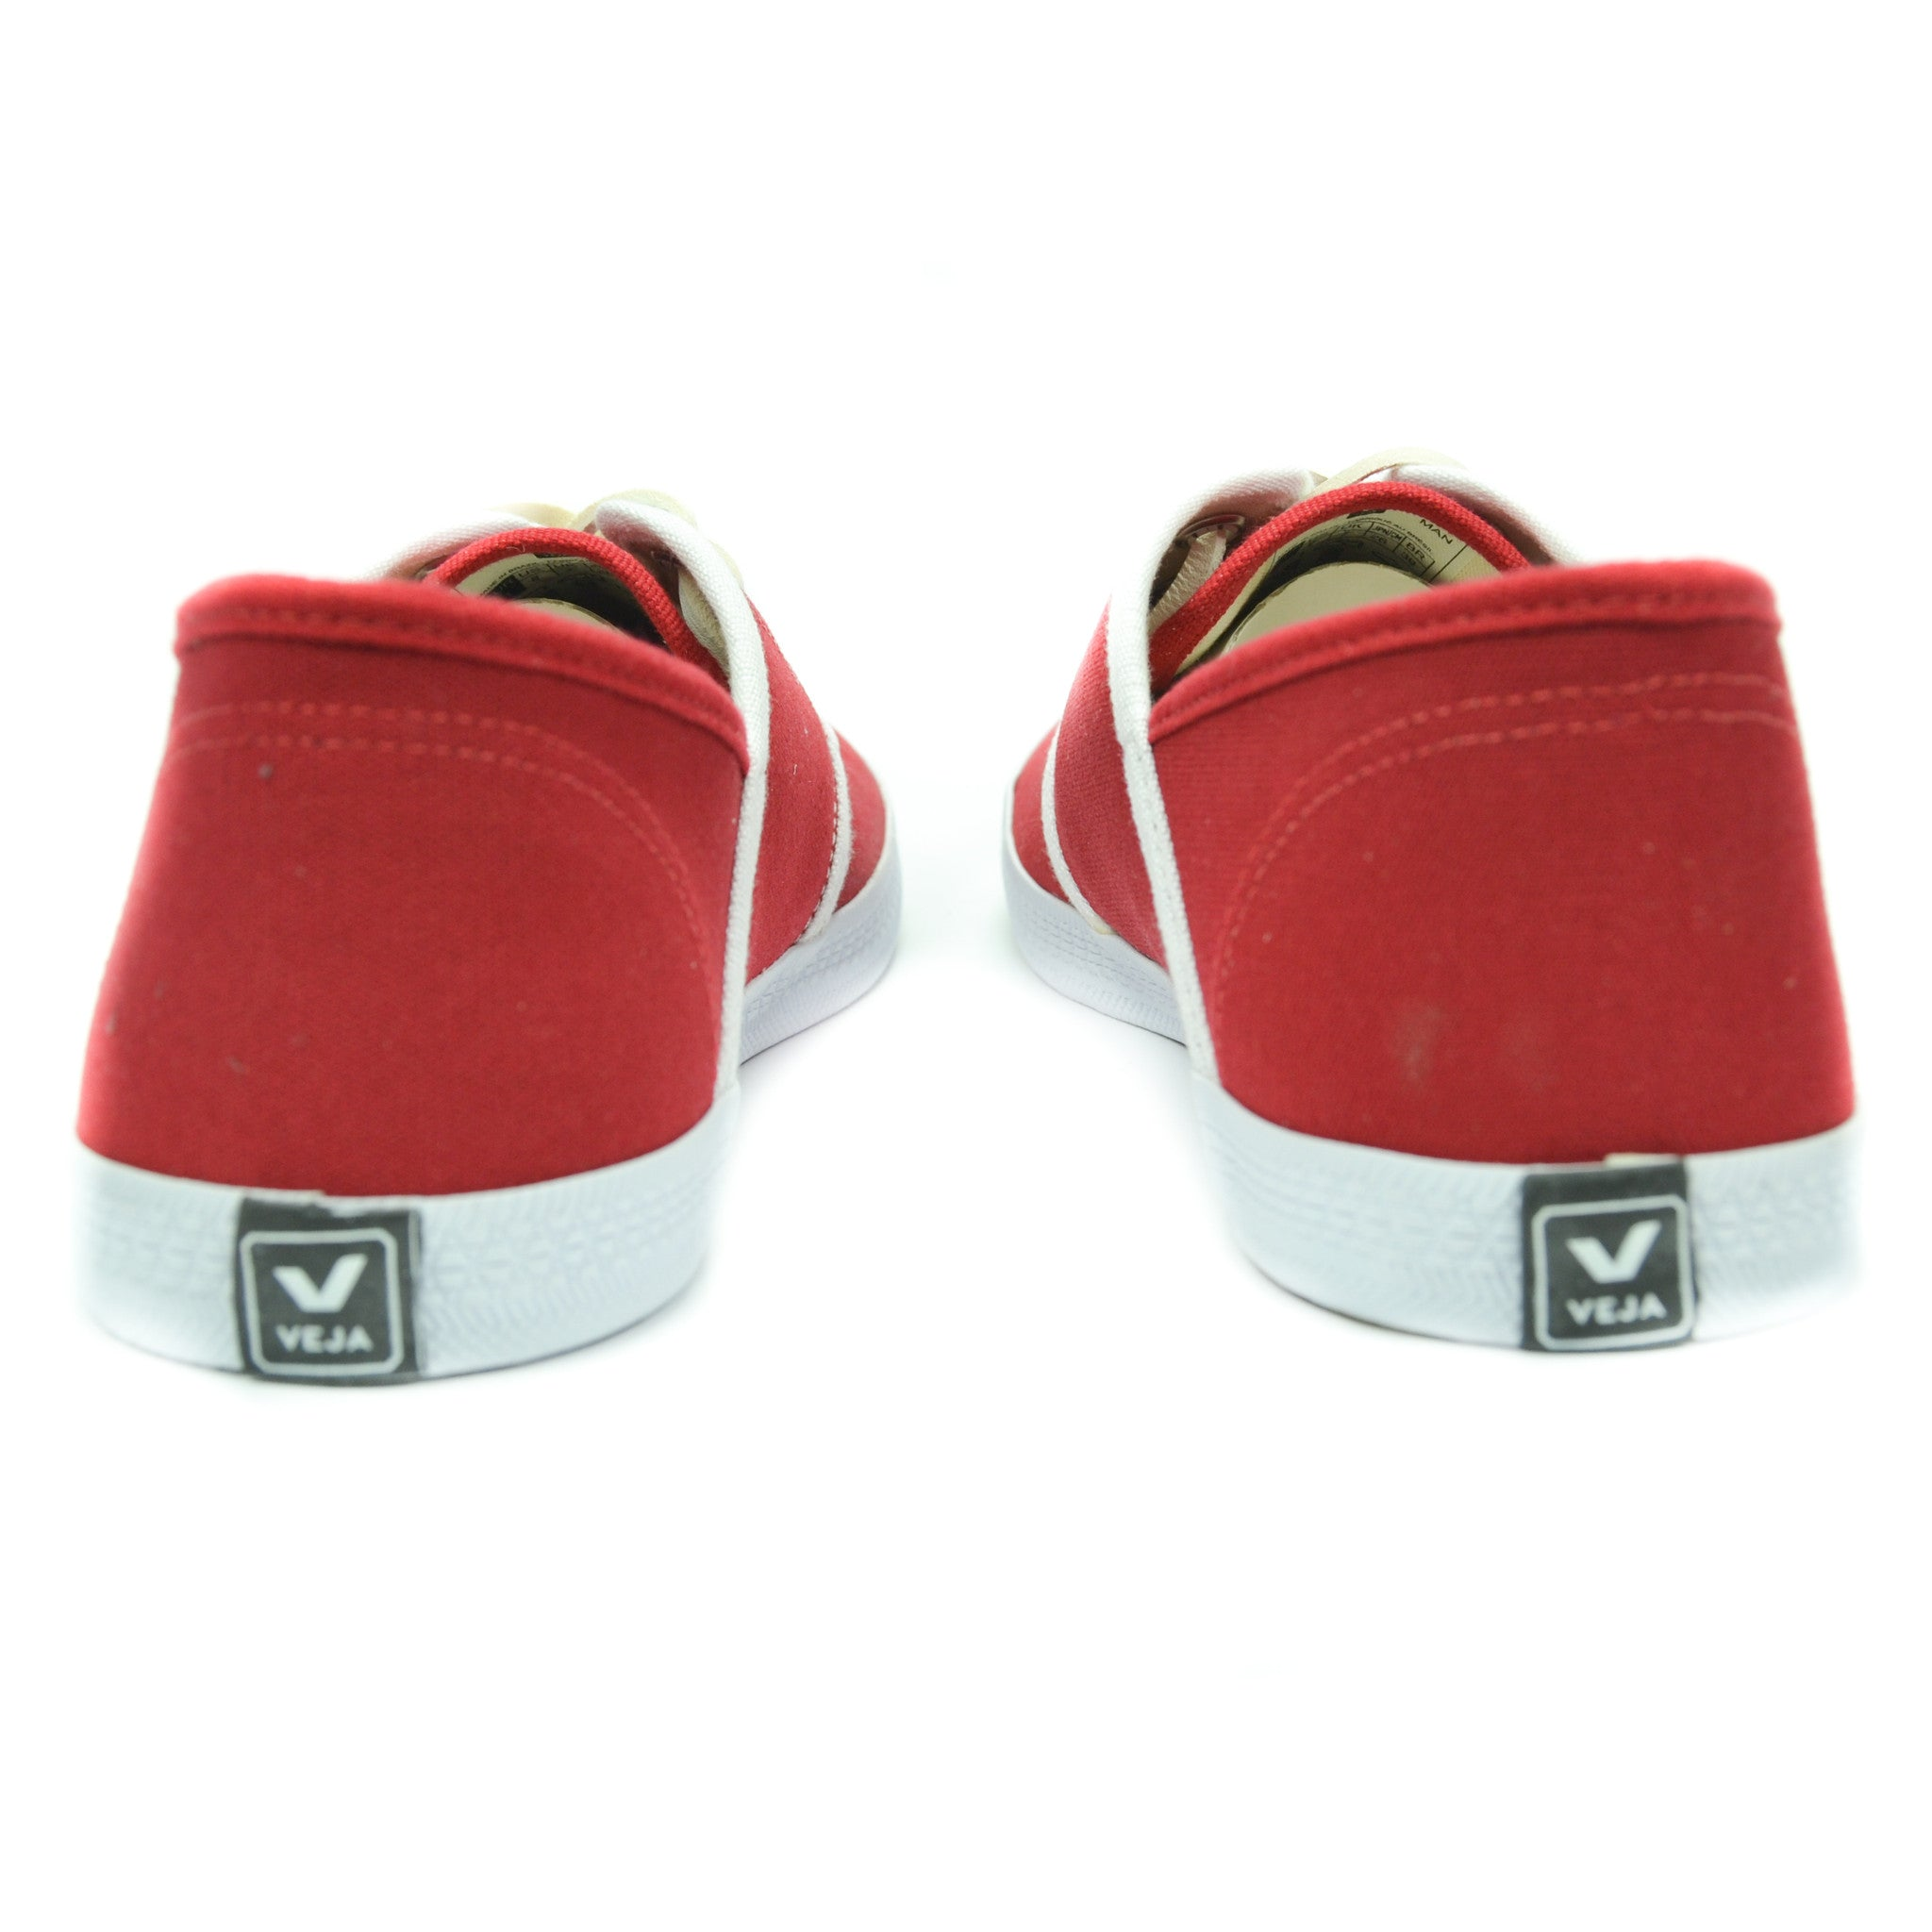 Veja - Mediteranee Canvas Sneakers in London Red